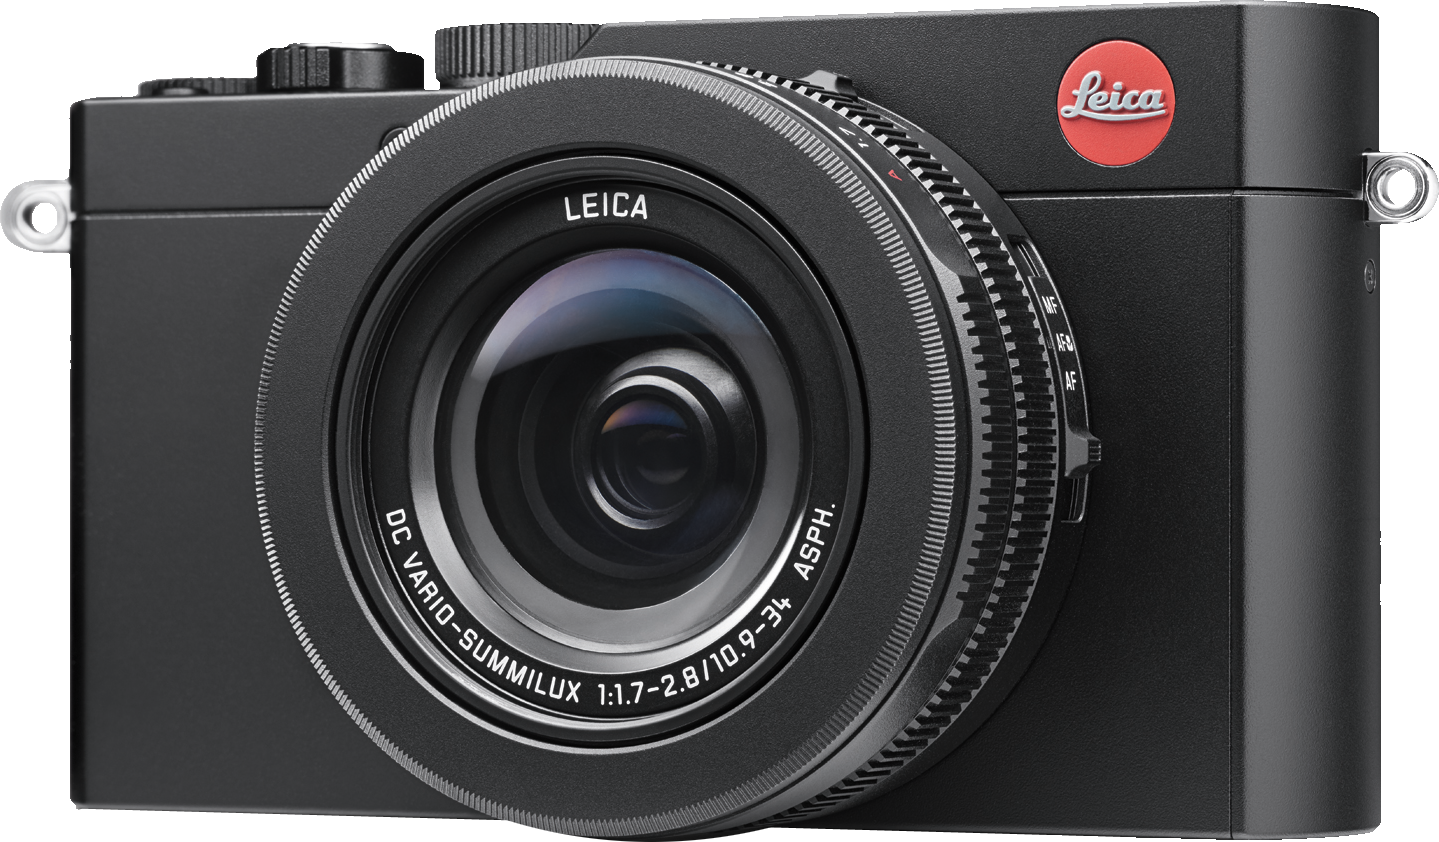 A Leica D-Lux camera. This is an example of Ray's new toy!